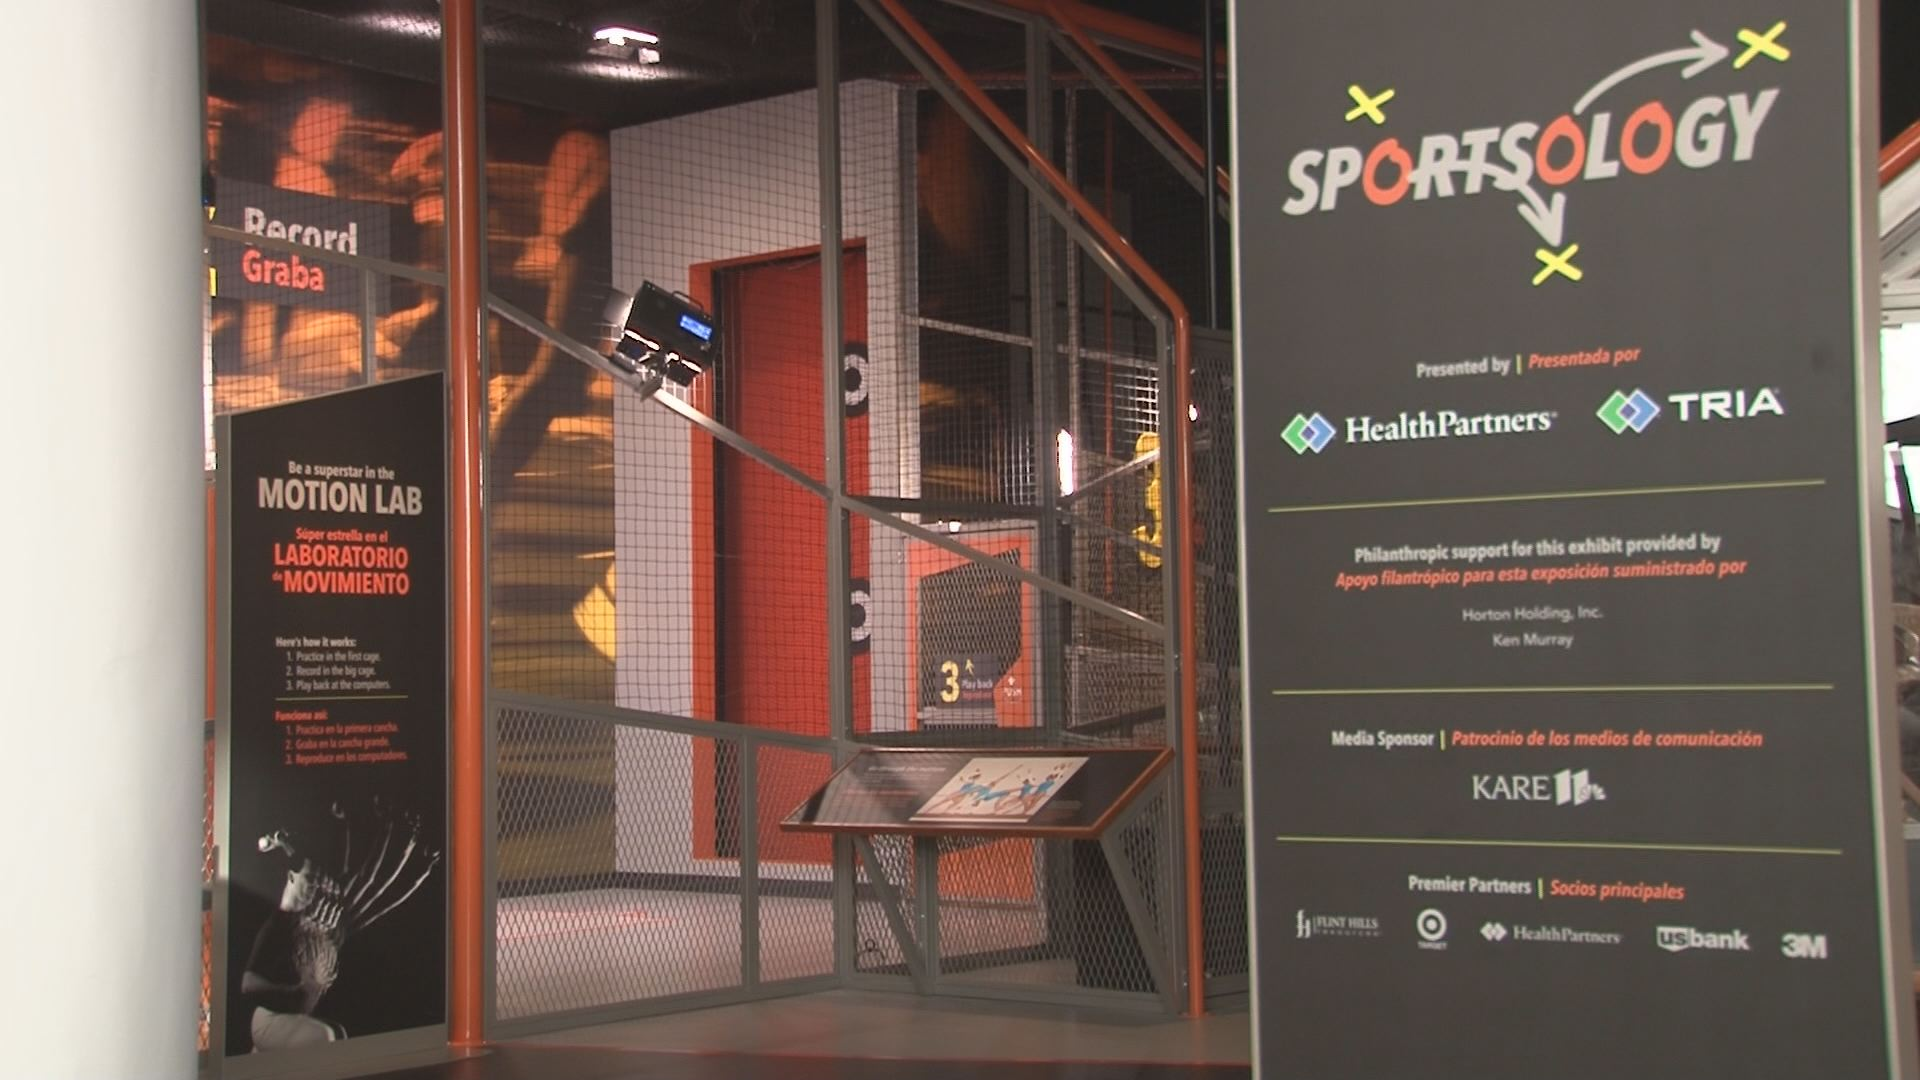 Science house at the science museum of minnesota -  Sportsology Opens At Science Museum Kare11 Com